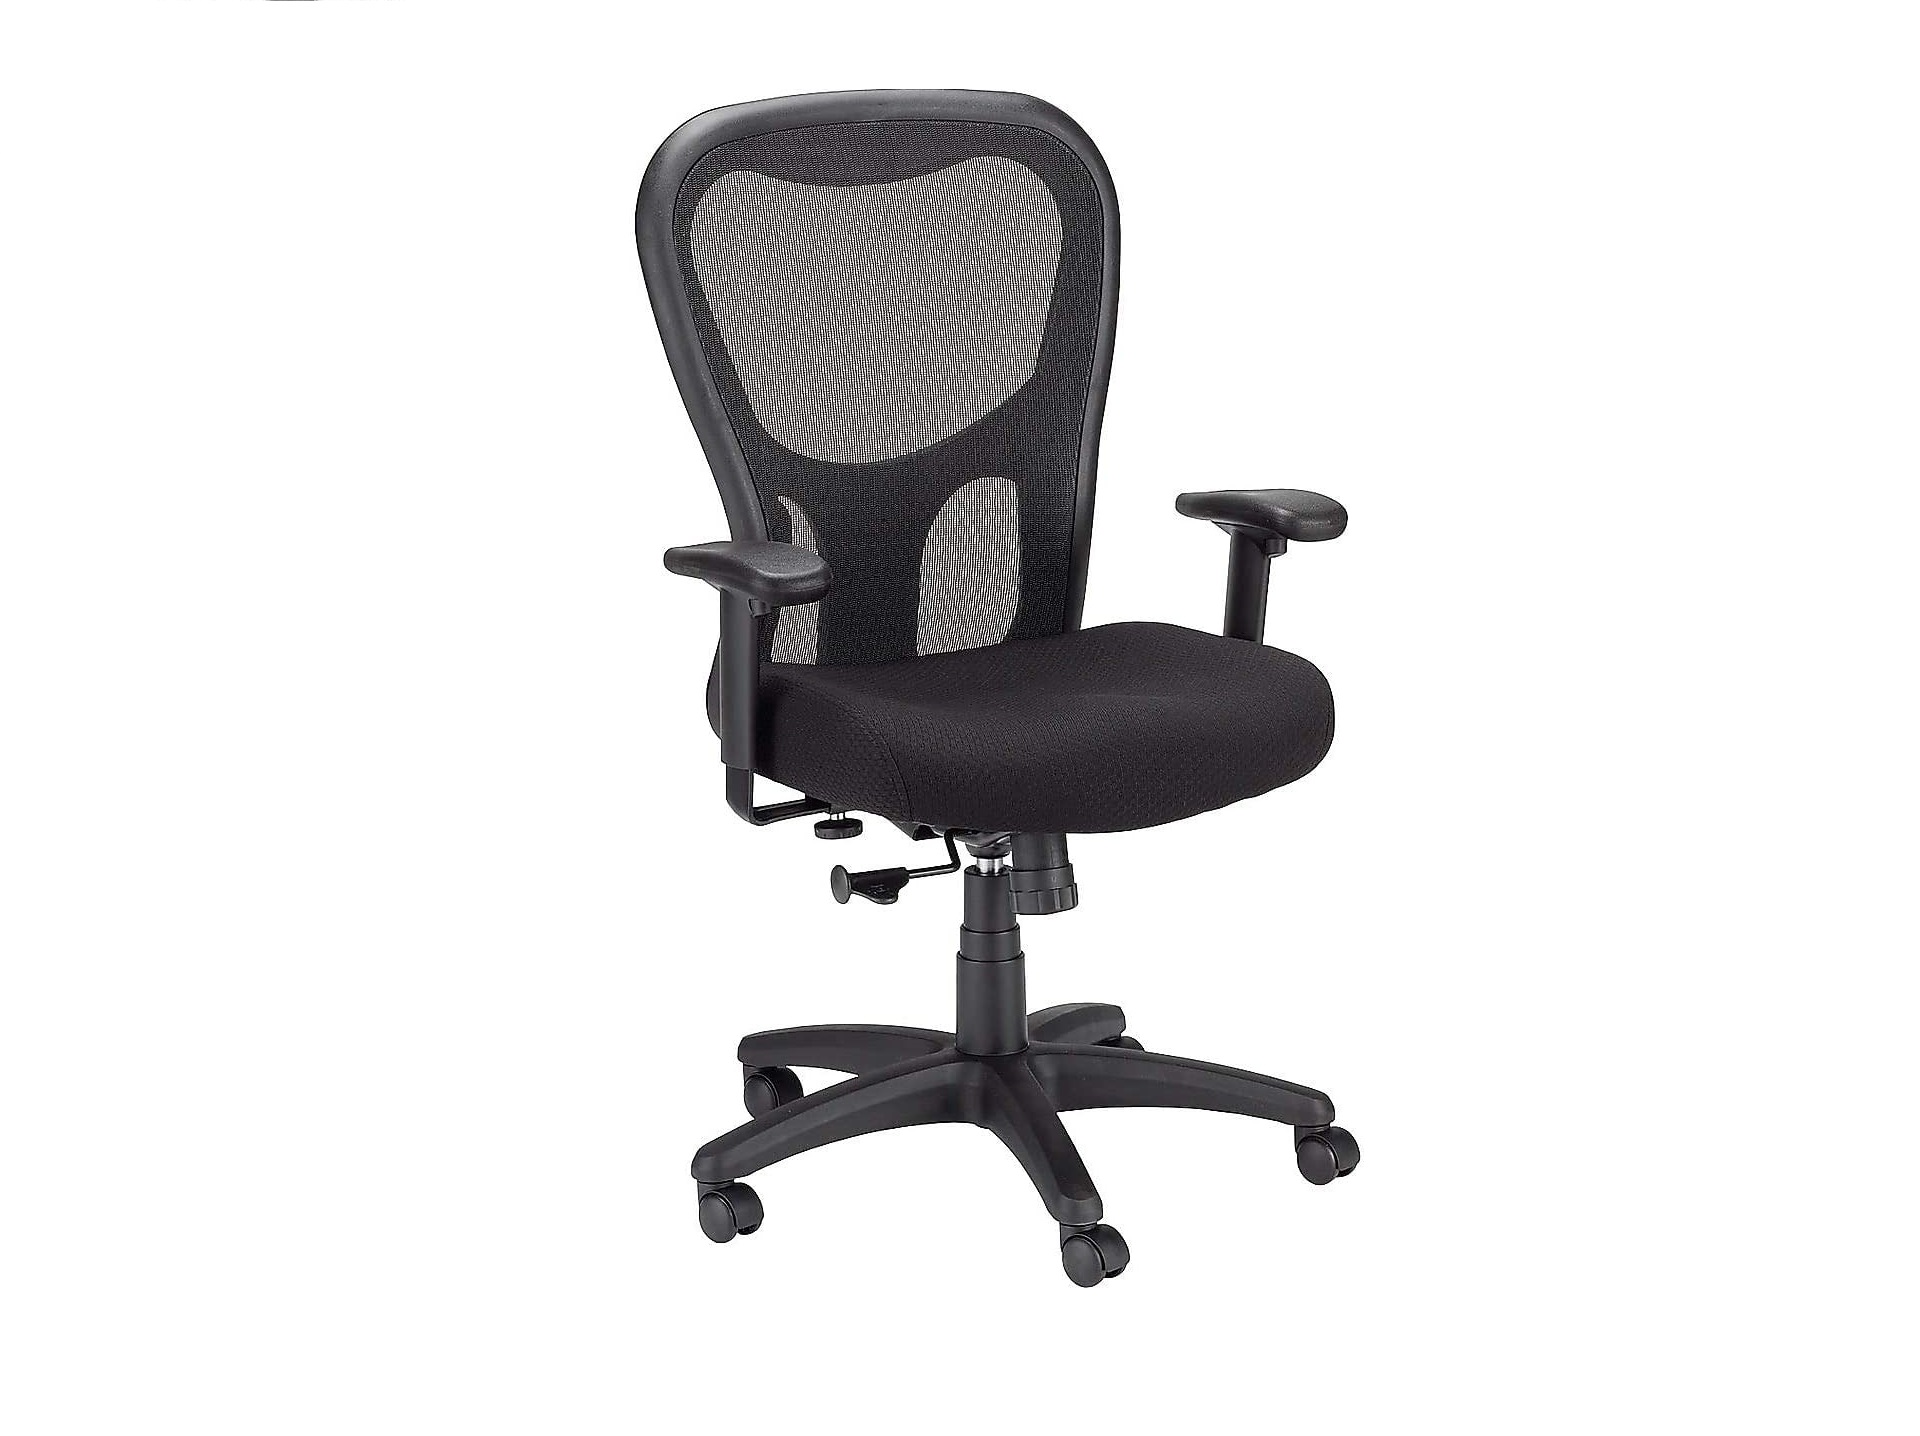 Tempur Pedic Office Chair Review